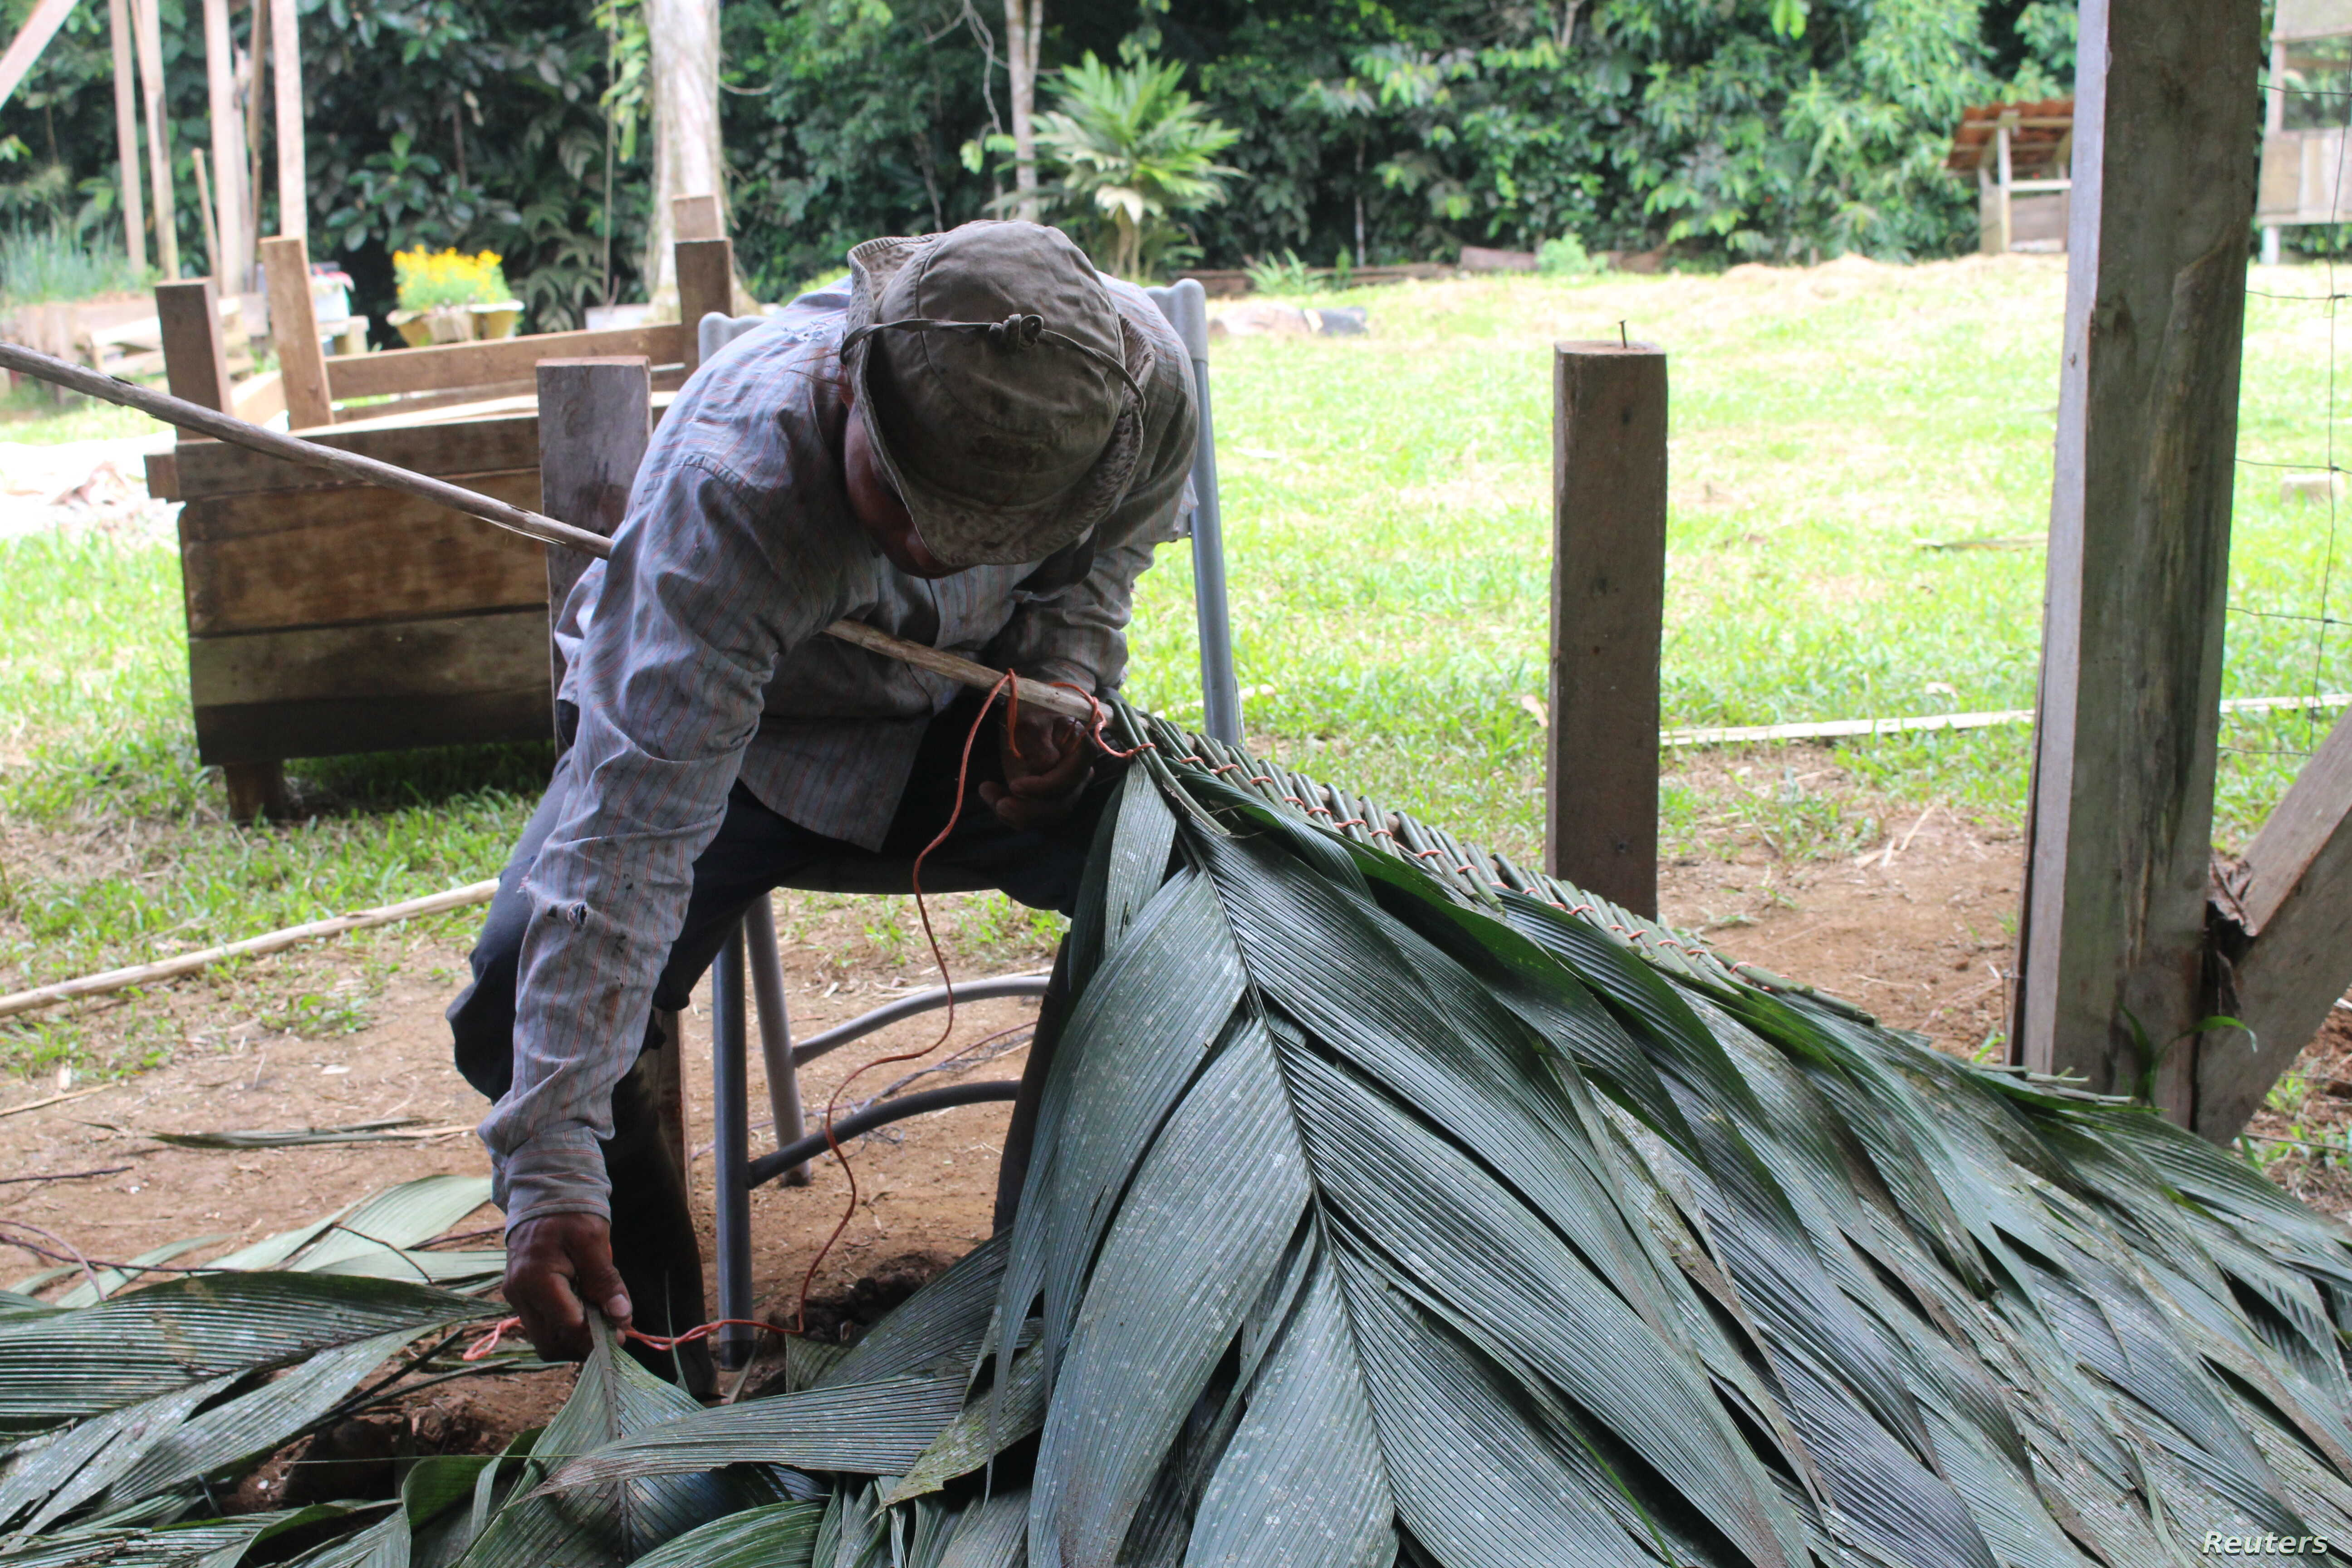 A man shows how to thread plant leaves onto a pole to make thatched roofing at the Siwakabata agro-ecology farm, Talamanca, Costa Rica, May 10, 2018.